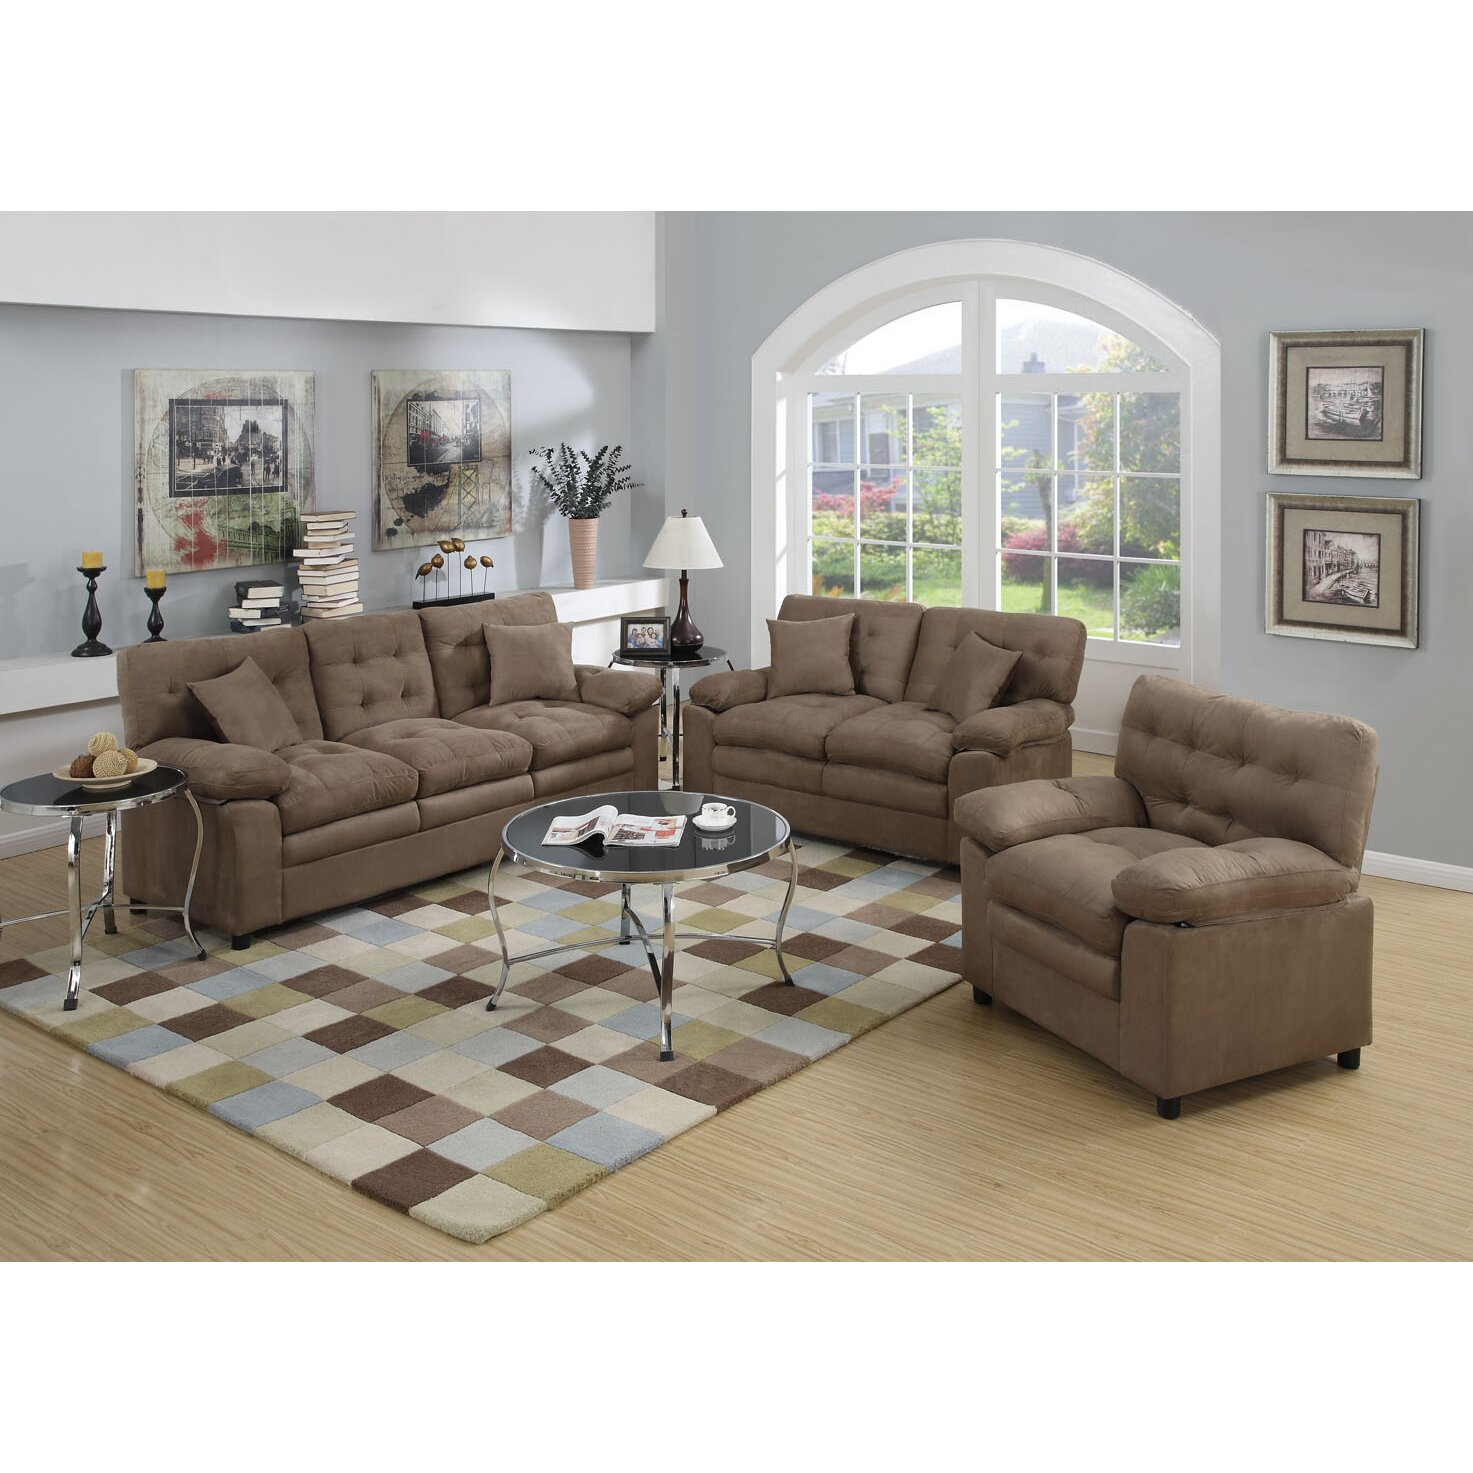 Poundex bobkona colona 3 piece living room set reviews for Family room furniture sets